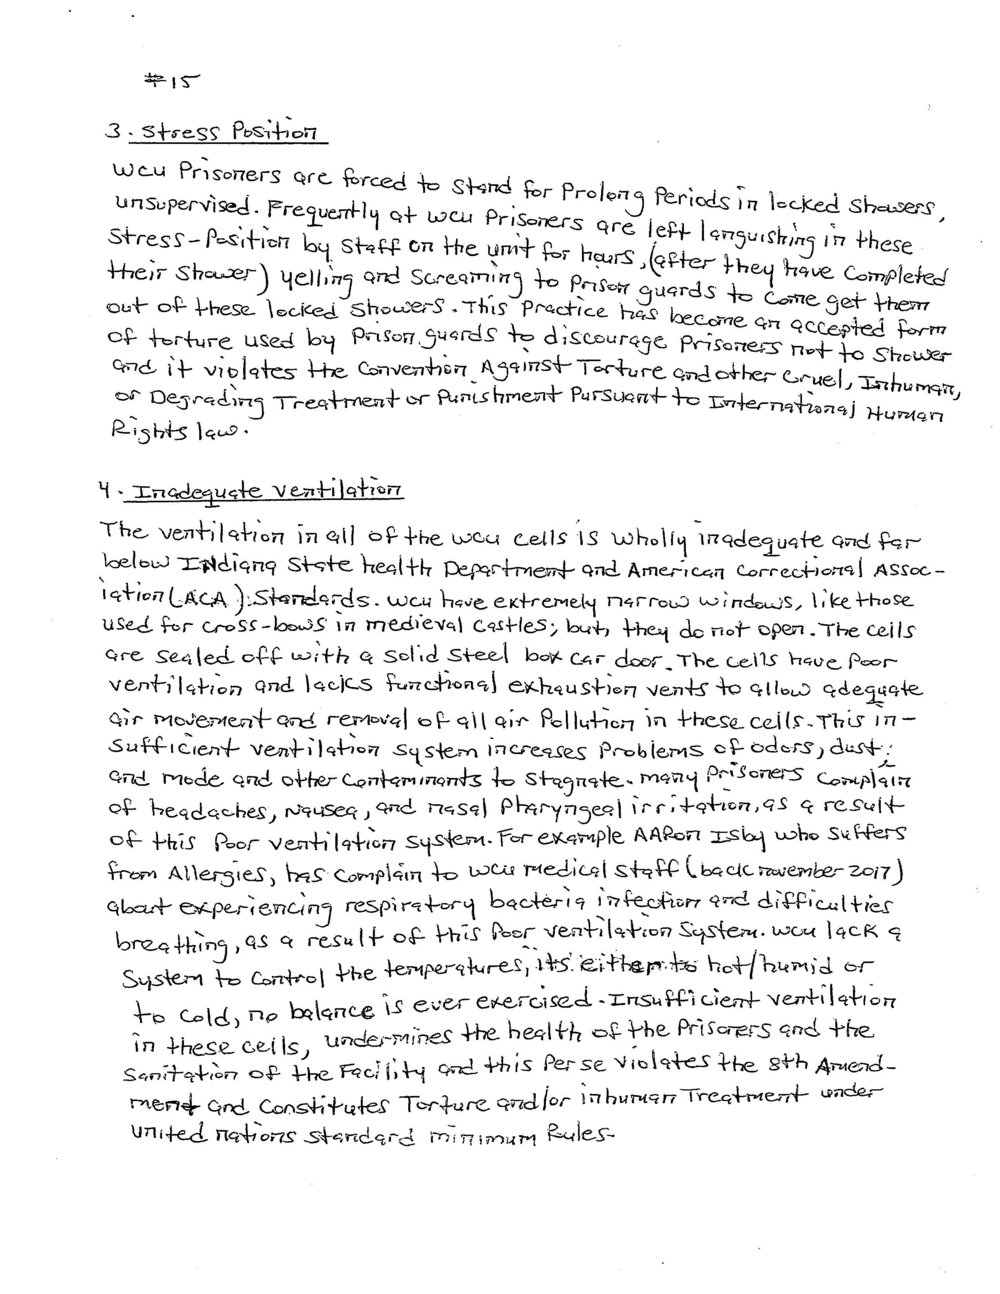 Human Rights Report on Westville_Page_15.jpg